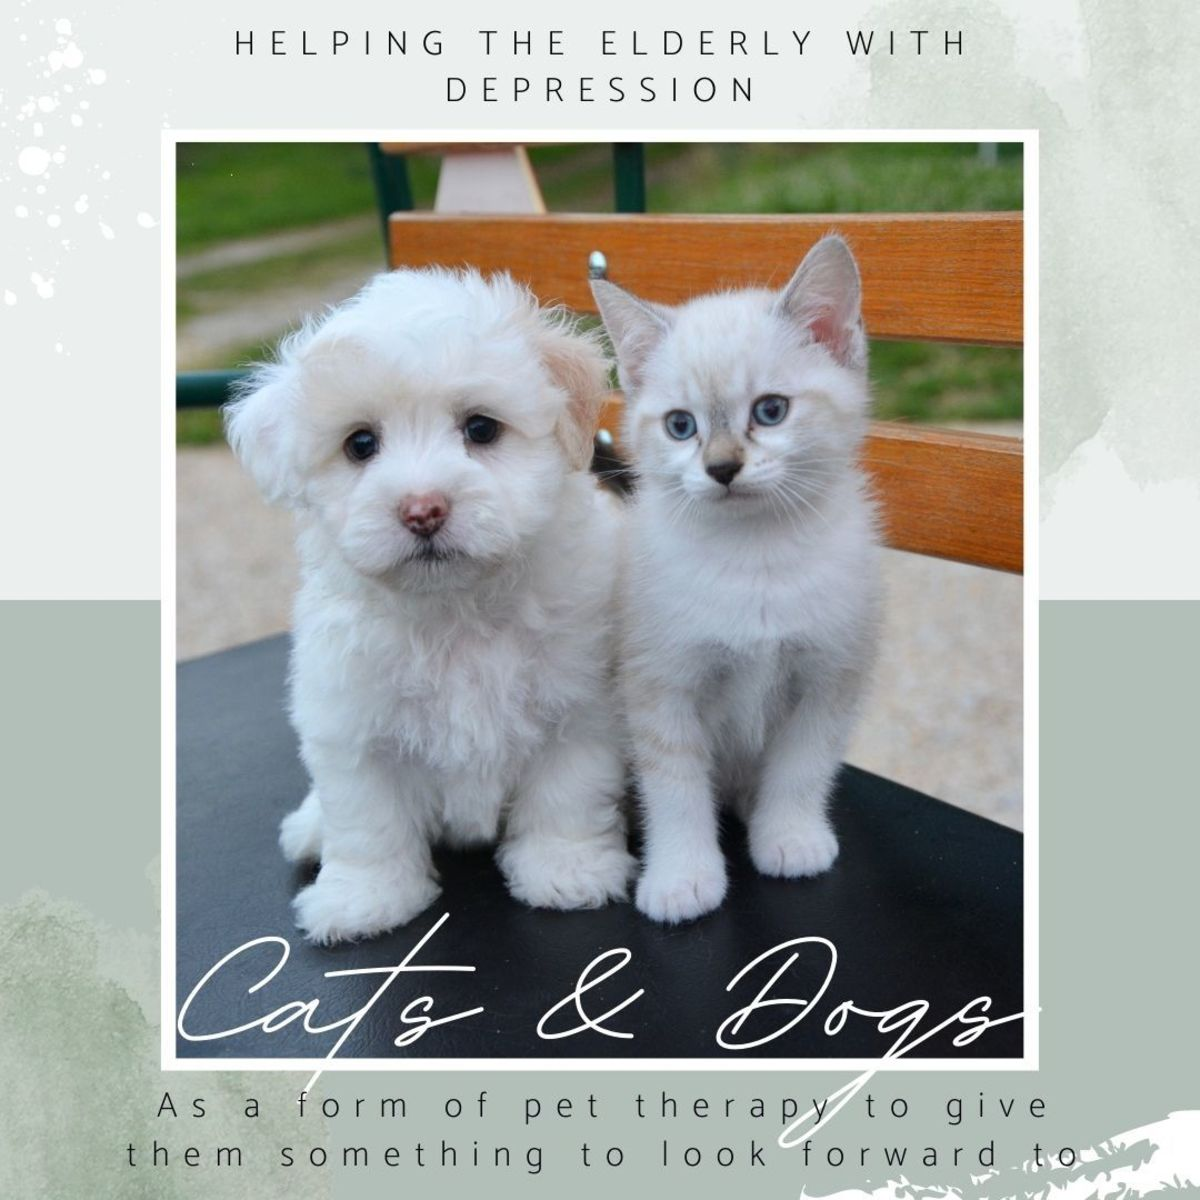 Pet such as dog or cat can be good therapy for elderly people who are down with depression